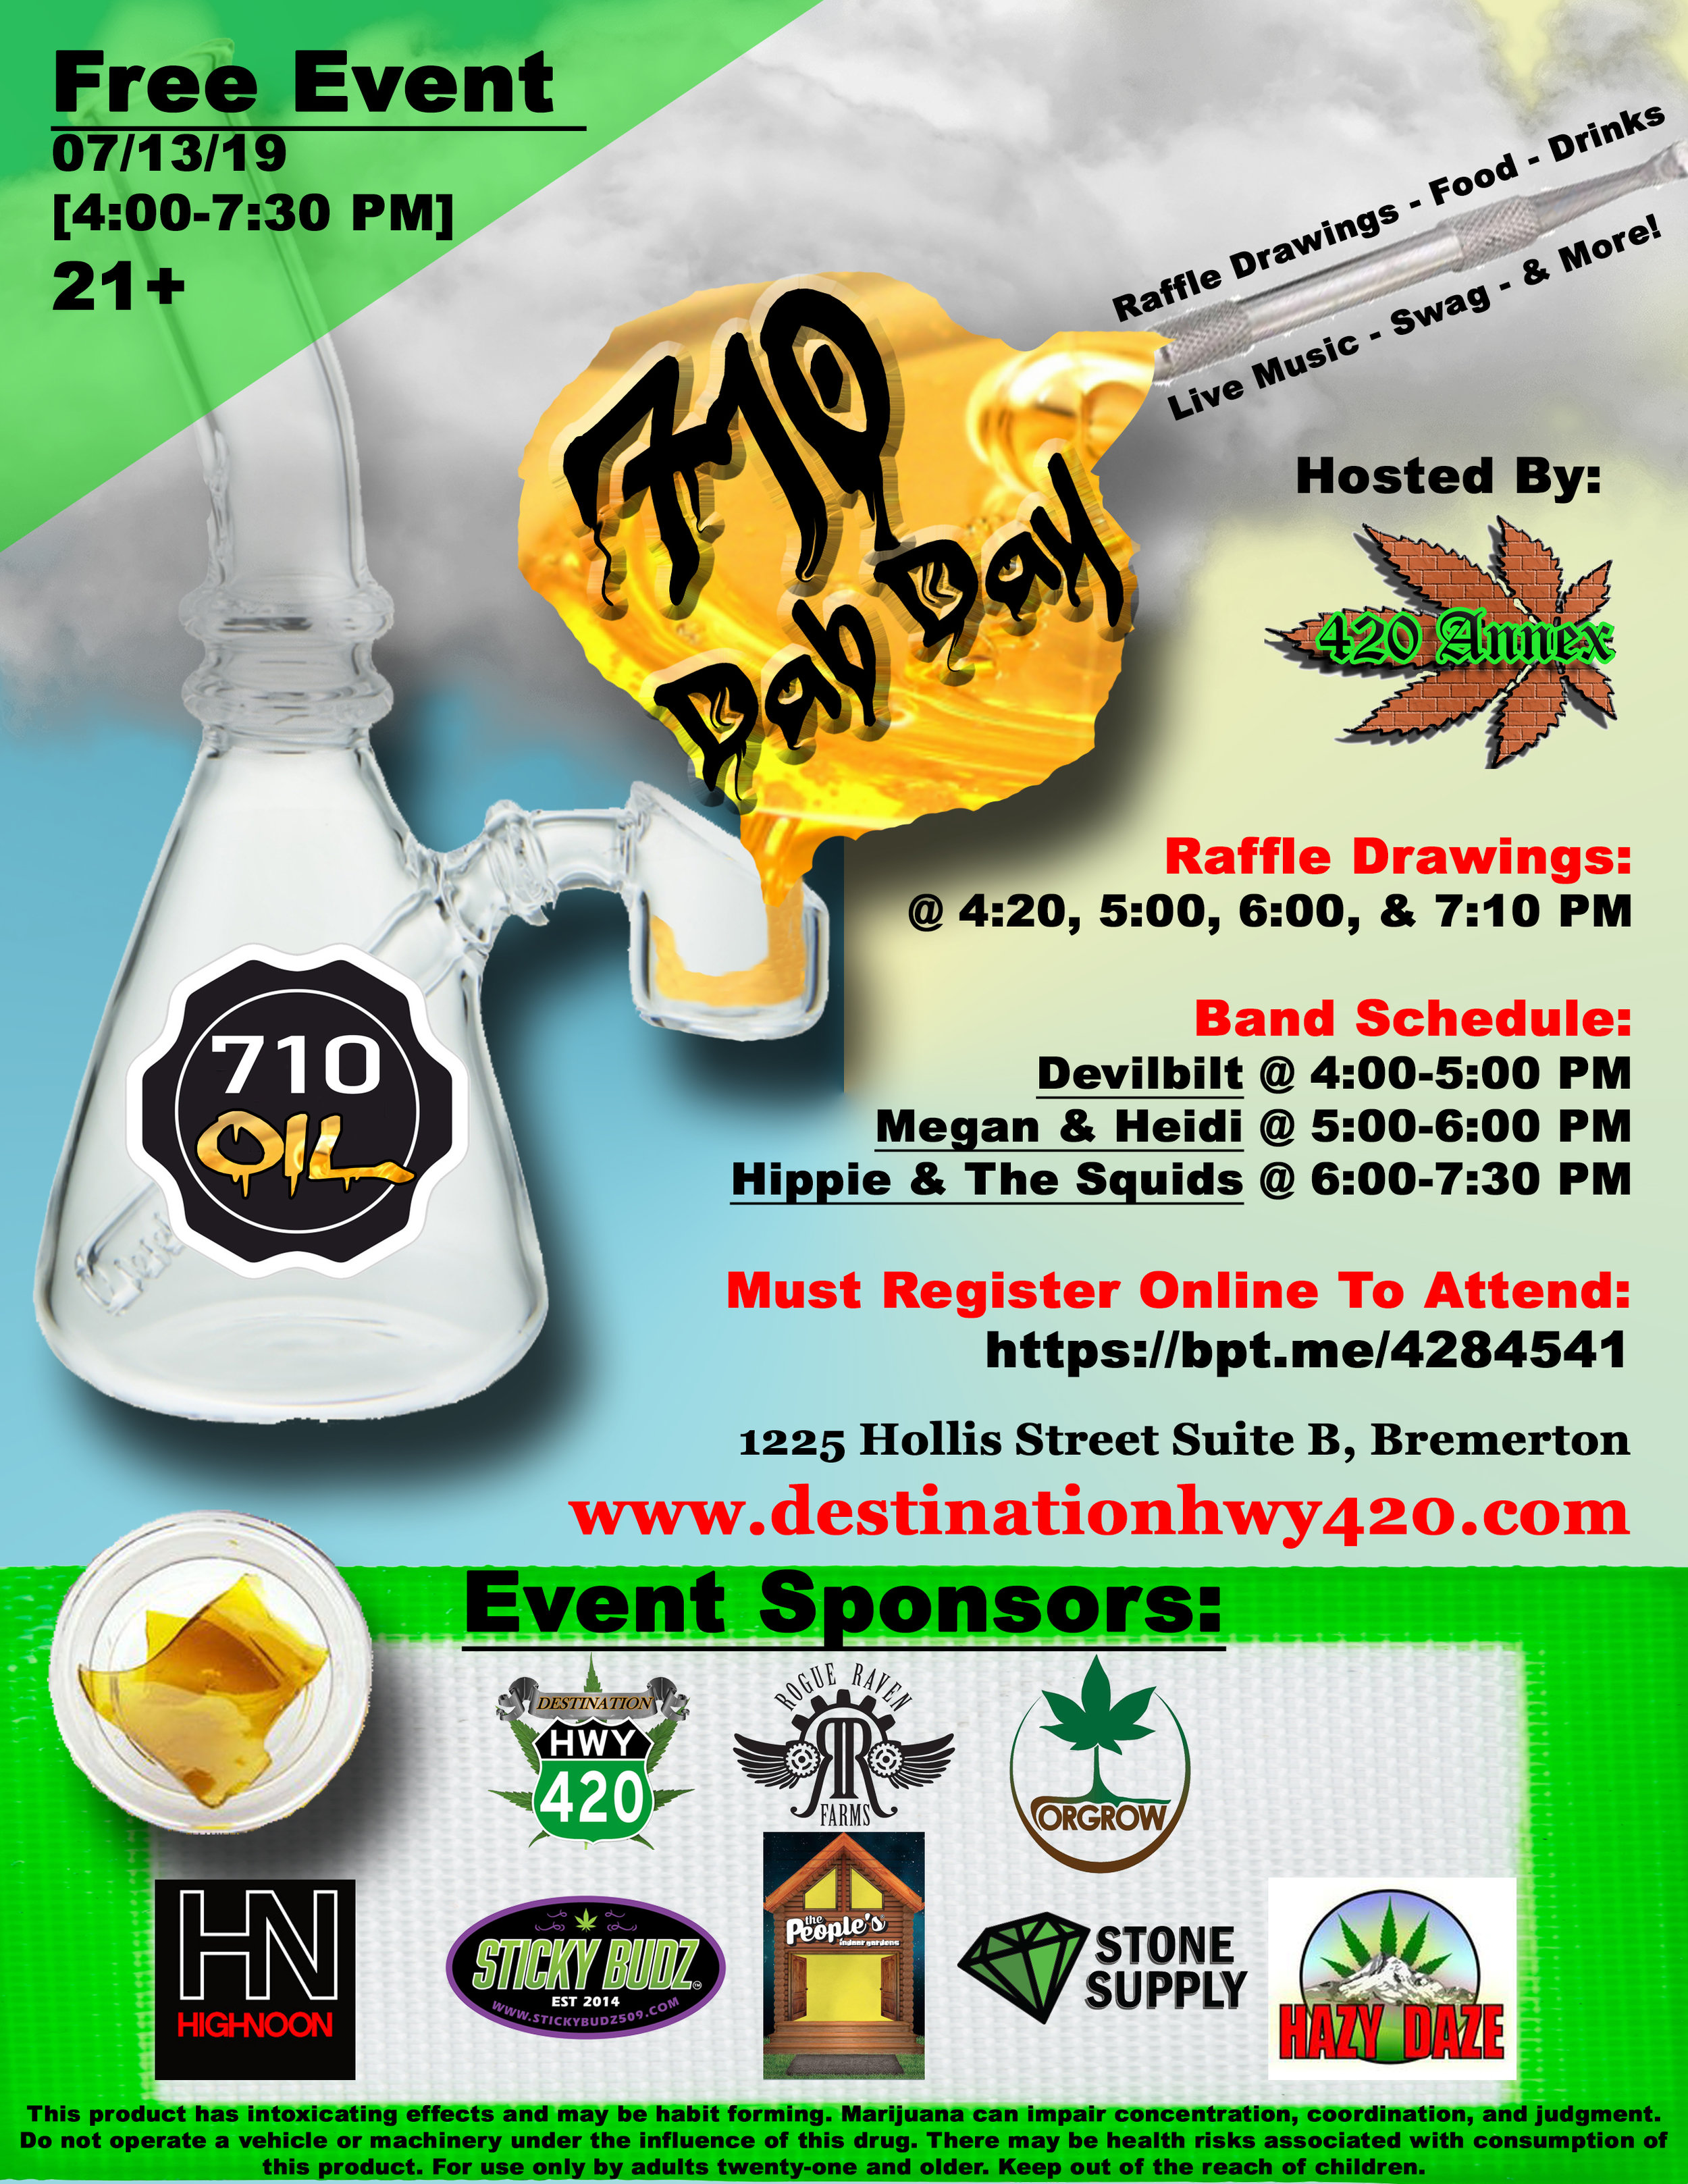 710: The Dabtastic Celebration [For Cannabis Concentrates]. Join us on 07/13/19 for Kitsap County's biggest and best cannabis event! This party is free to attend. Live music, food, drinks, raffle drawings, swag, and more.